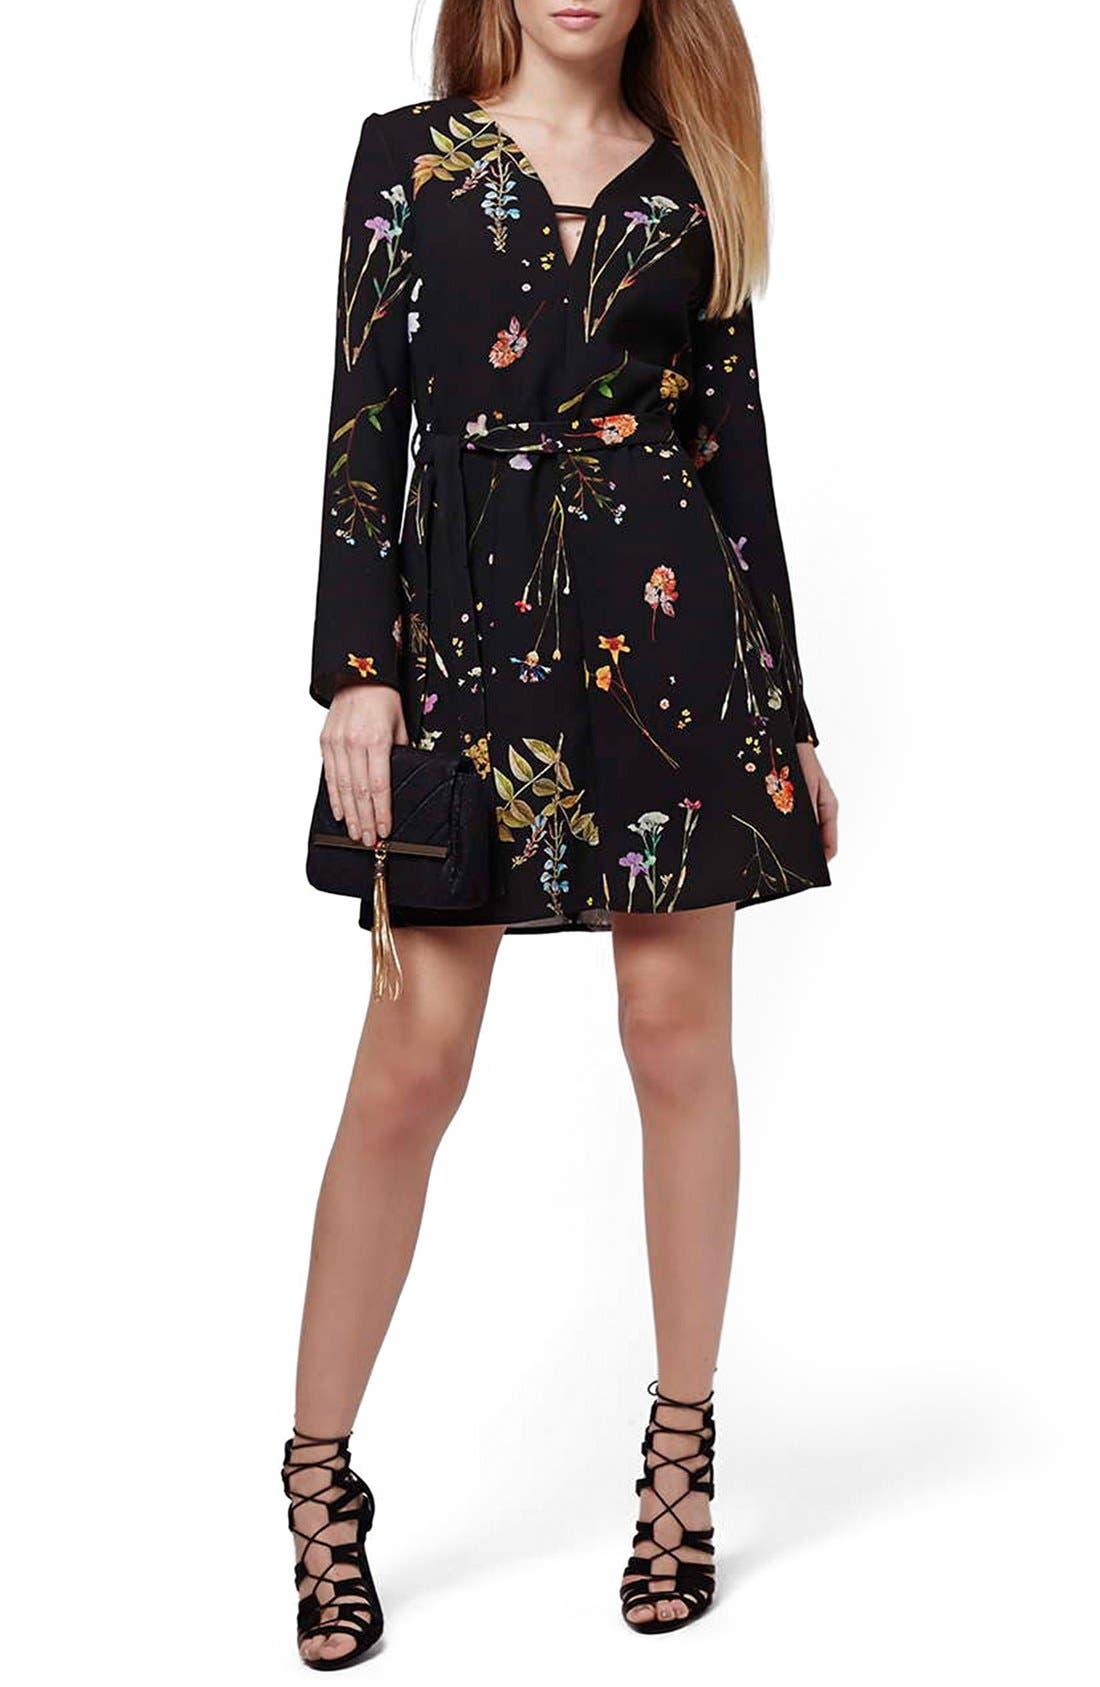 TOPSHOP, Belted Floral Tunic Dress, Main thumbnail 1, color, 001